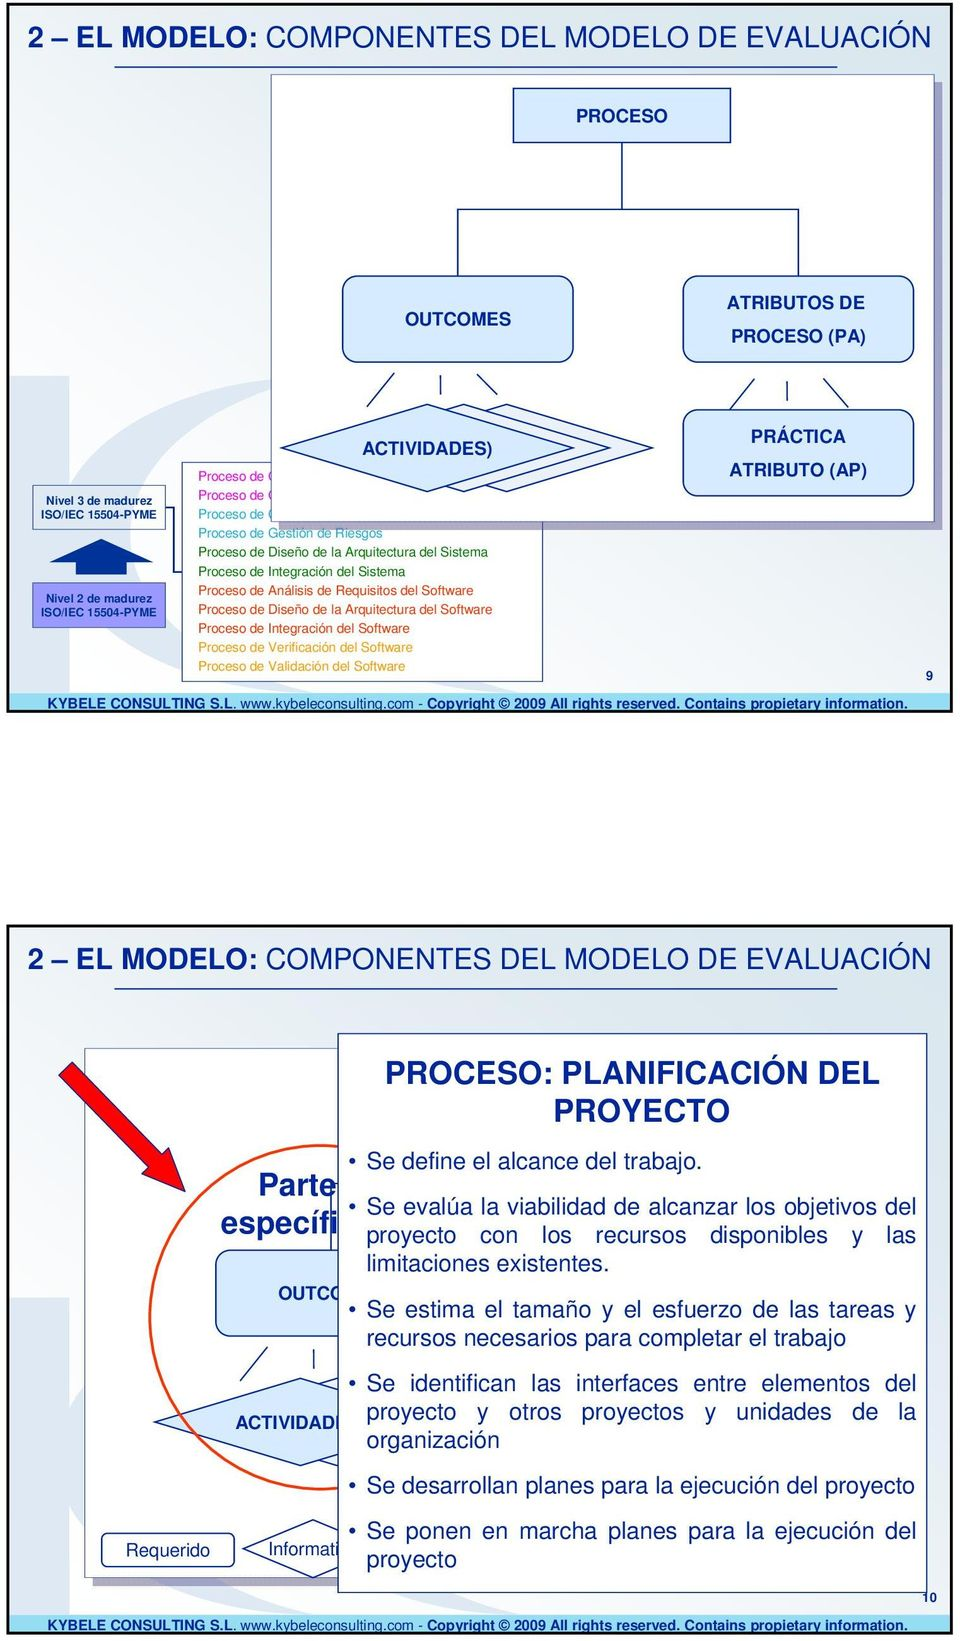 Análisis Análisis Requisitos l l Software Proceso Diseño Arquitectura l l Software Proceso Integración l l Software Proceso Verificación l l Software Proceso Validación l l Software PRÁCTICA ATRIBUTO